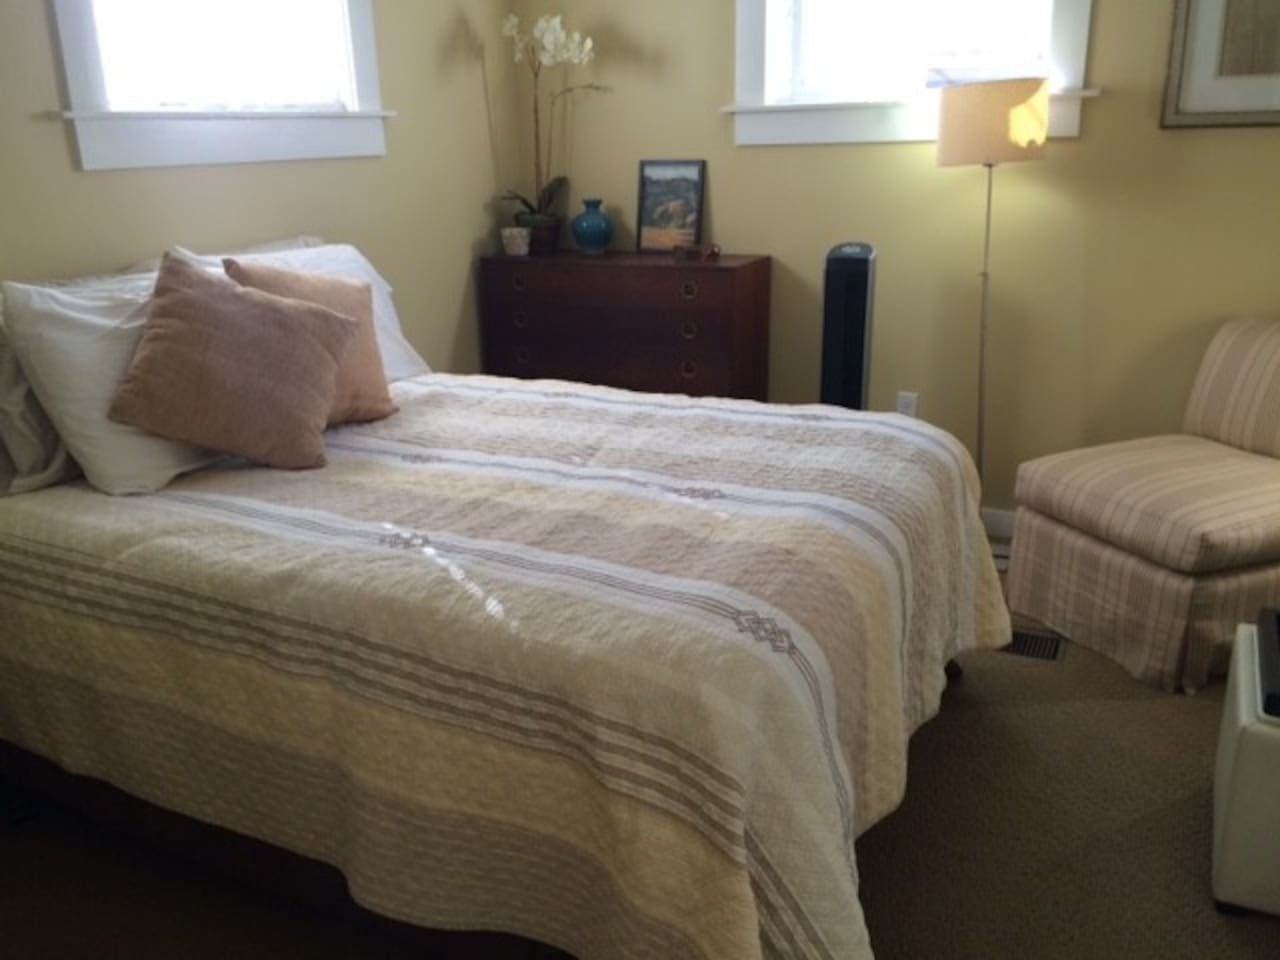 Full size mattress, plenty of pillows and blankets!  Dresser with small closet for clothes.